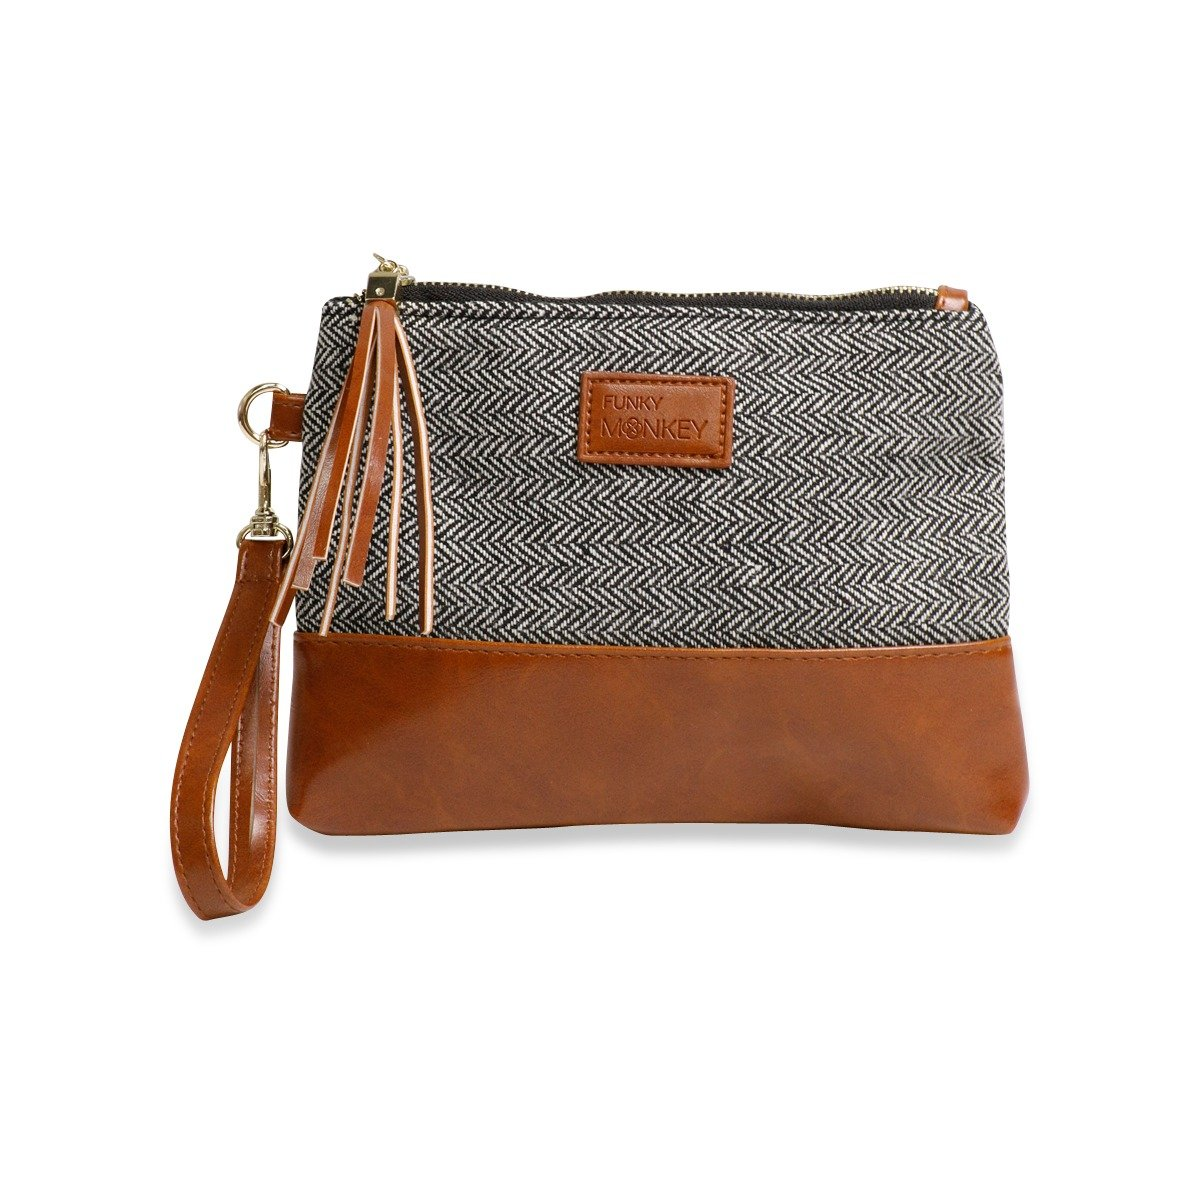 {Erika Collection} Wristlet Wallet Clutch Bag - Phone Purse Handbag - Small, Medium or Large Size - Brown & Gray Horizontal Herringbone Style, Vegan Bottom Urban- Funky Monkey Fashion (Medium)